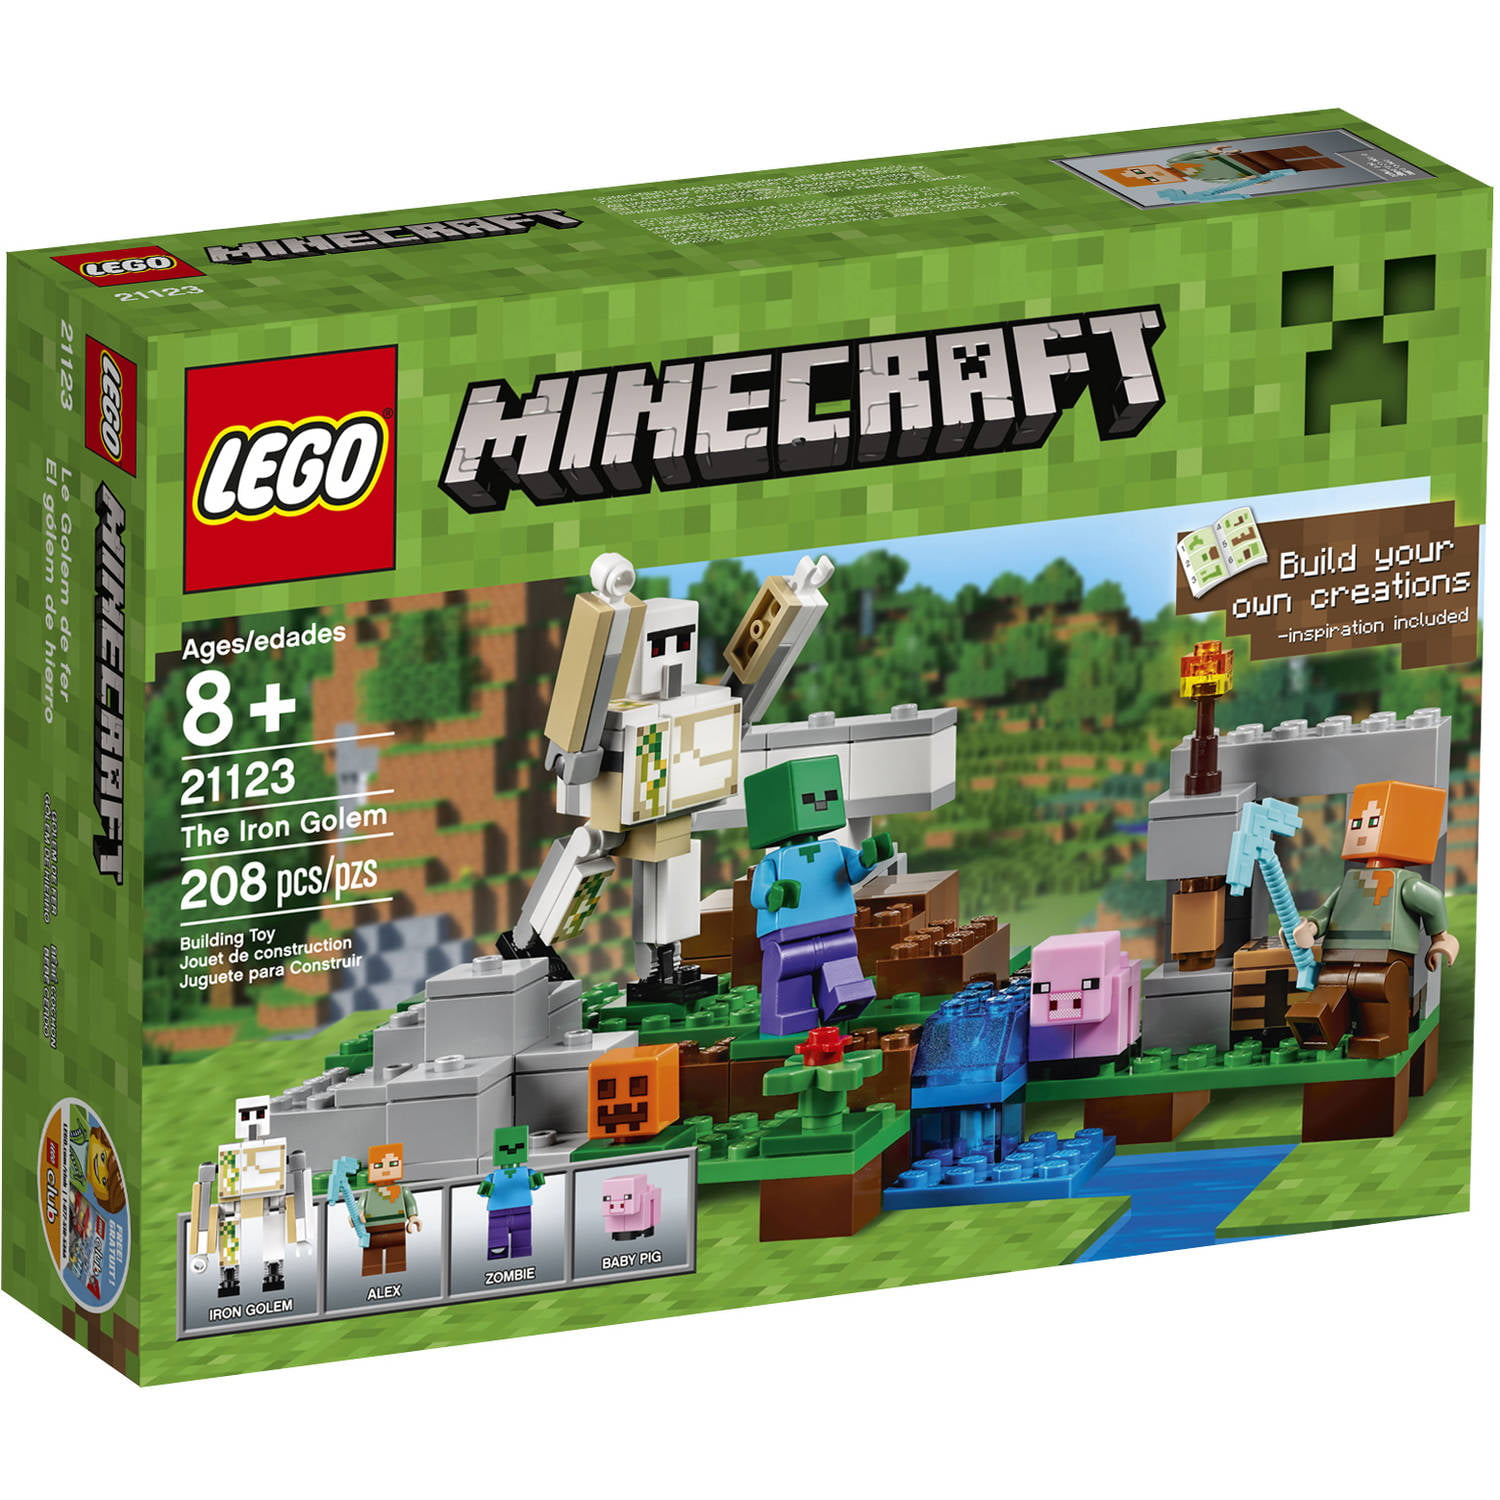 Lego Minecraft The Iron Golem, 21123 by LEGO Systems, Inc.